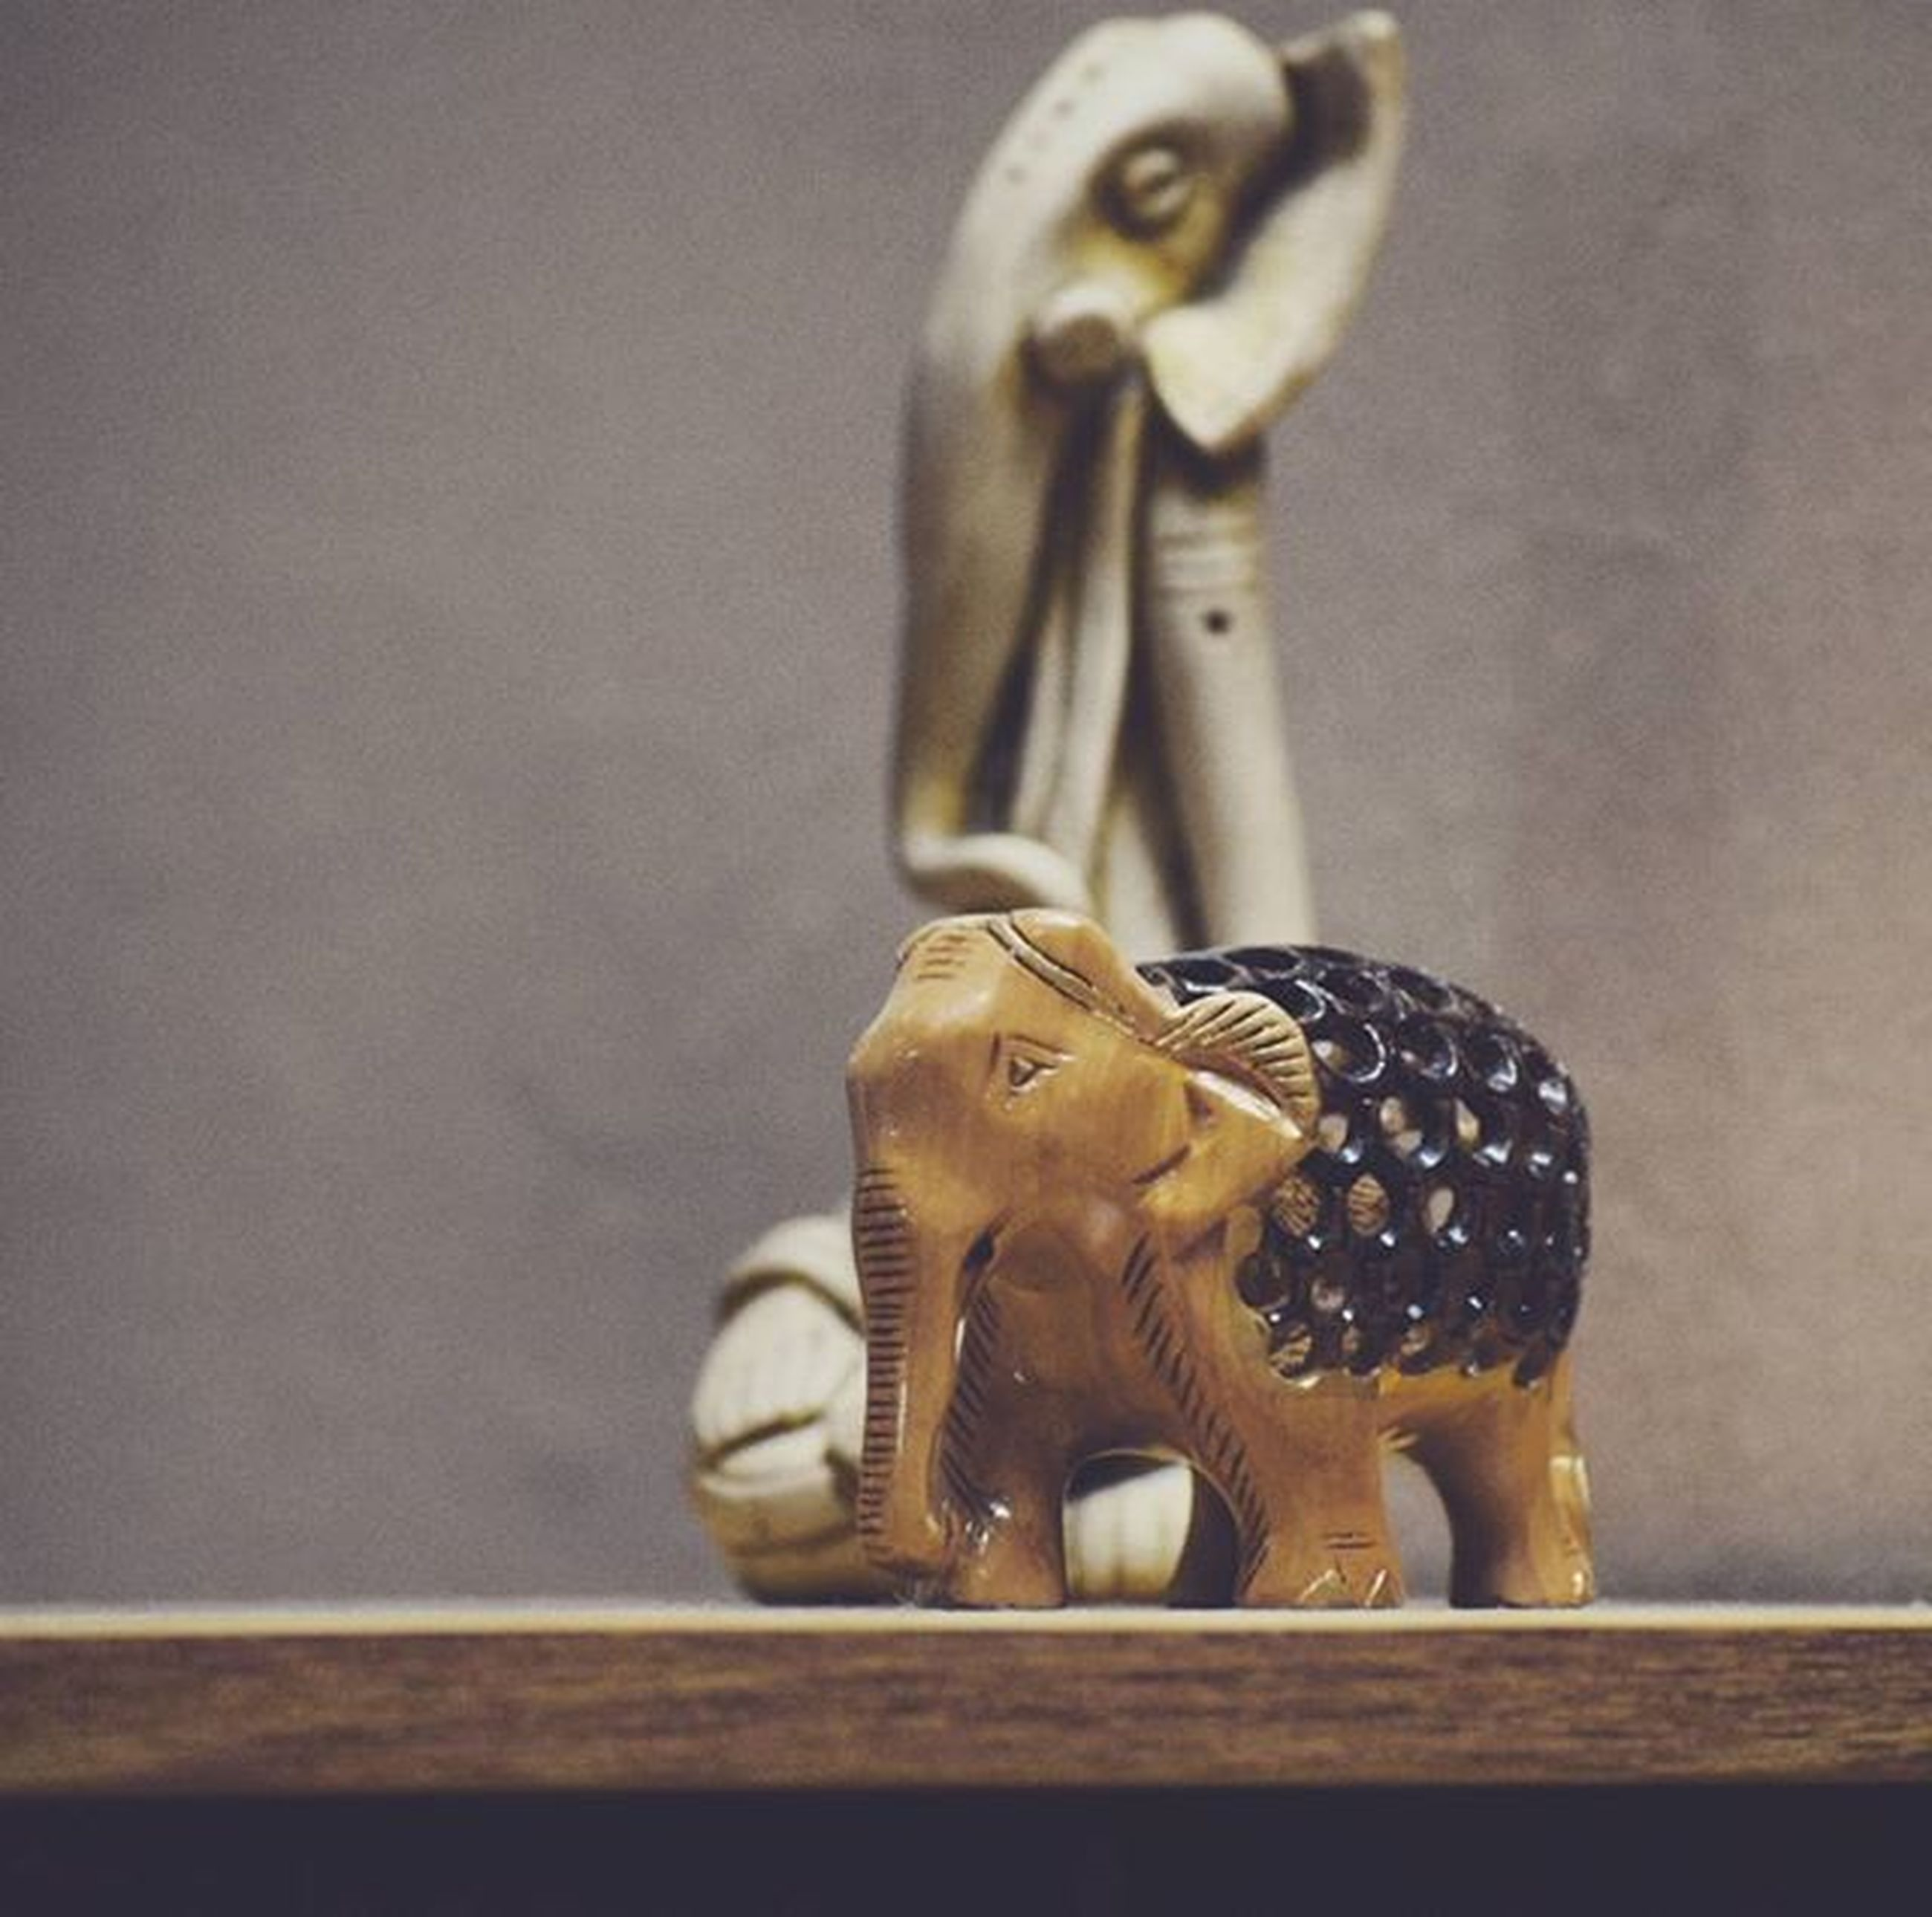 art and craft, human representation, statue, art, sculpture, creativity, animal representation, close-up, indoors, focus on foreground, carving - craft product, figurine, no people, craft, ornate, wall - building feature, gold colored, day